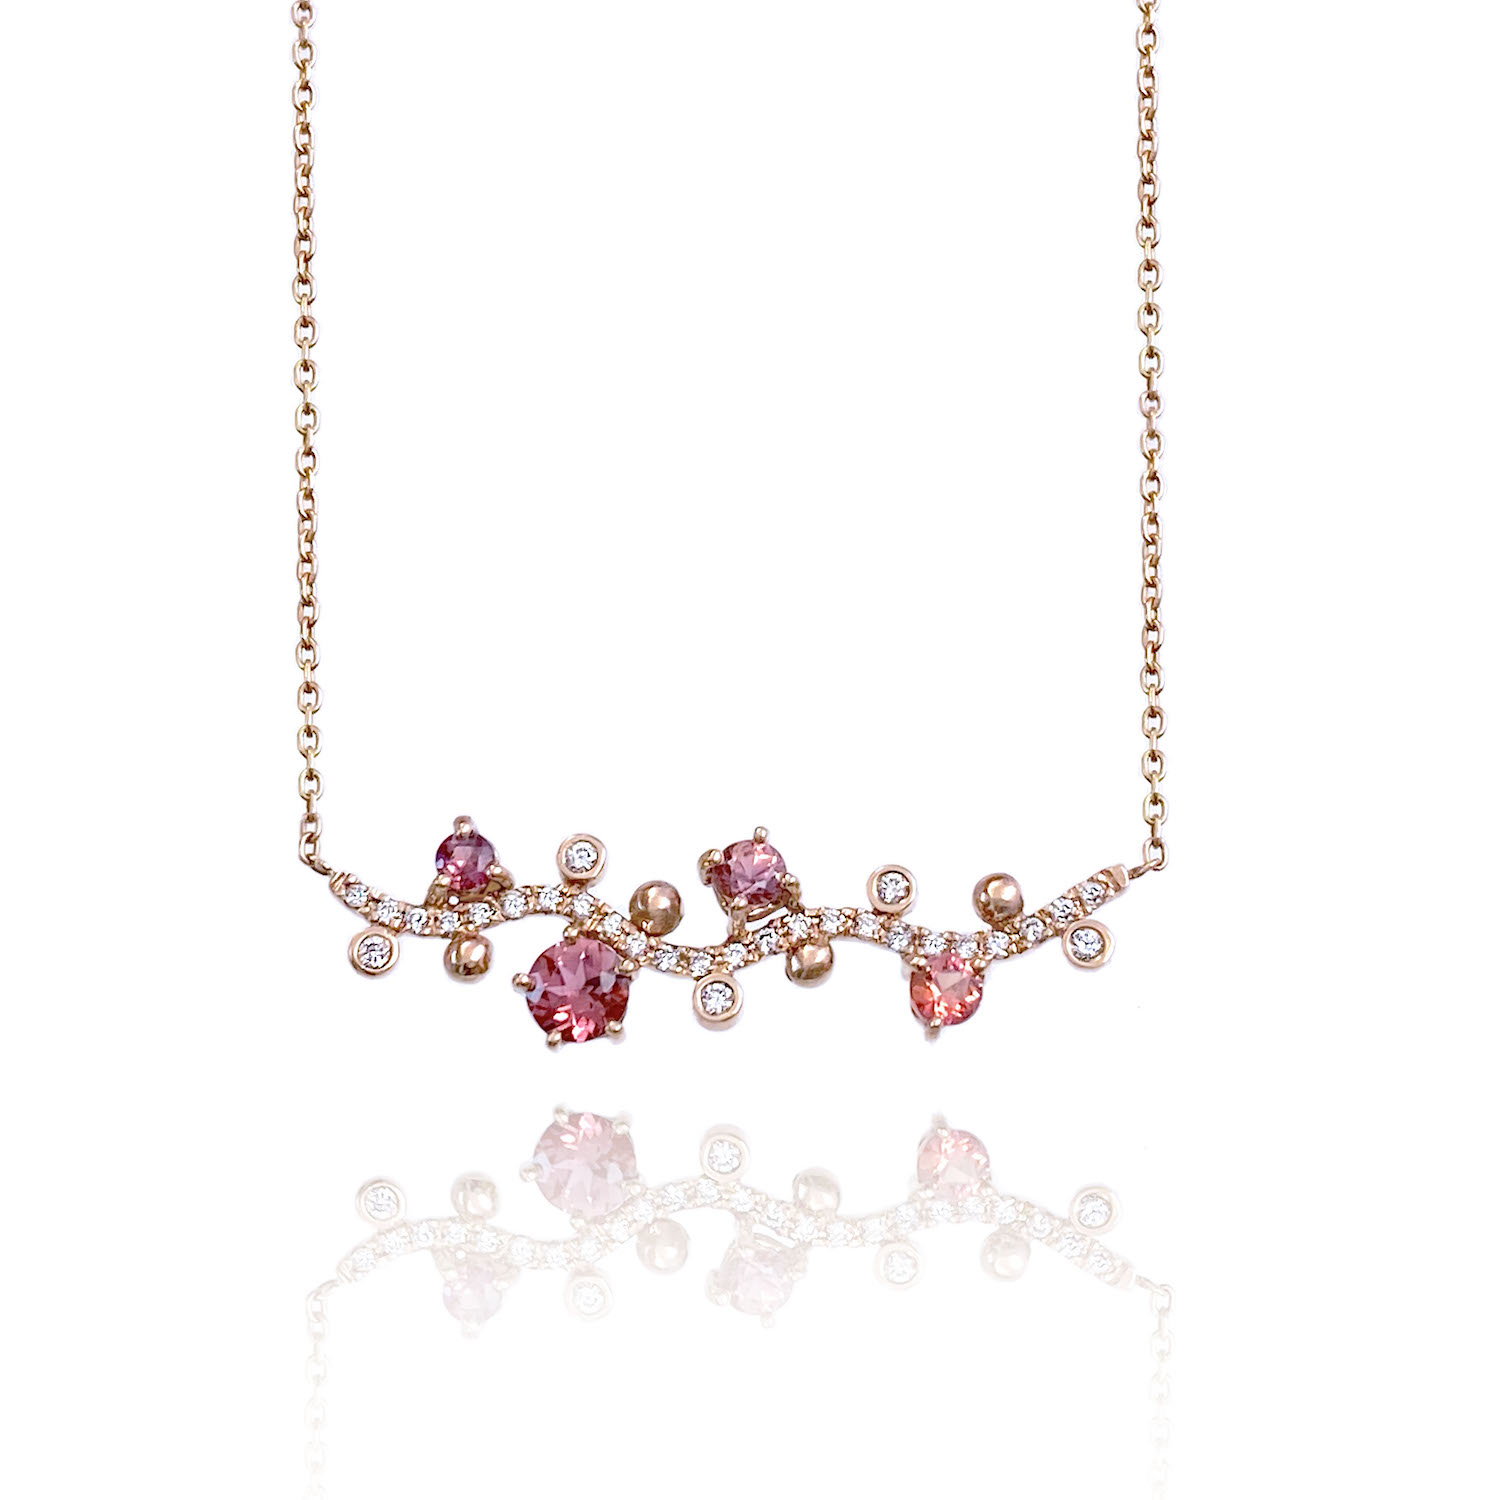 calliope-pink-floral-vine-necklace-sapphire-spinel-diamonds-jewelyrie_0691SH